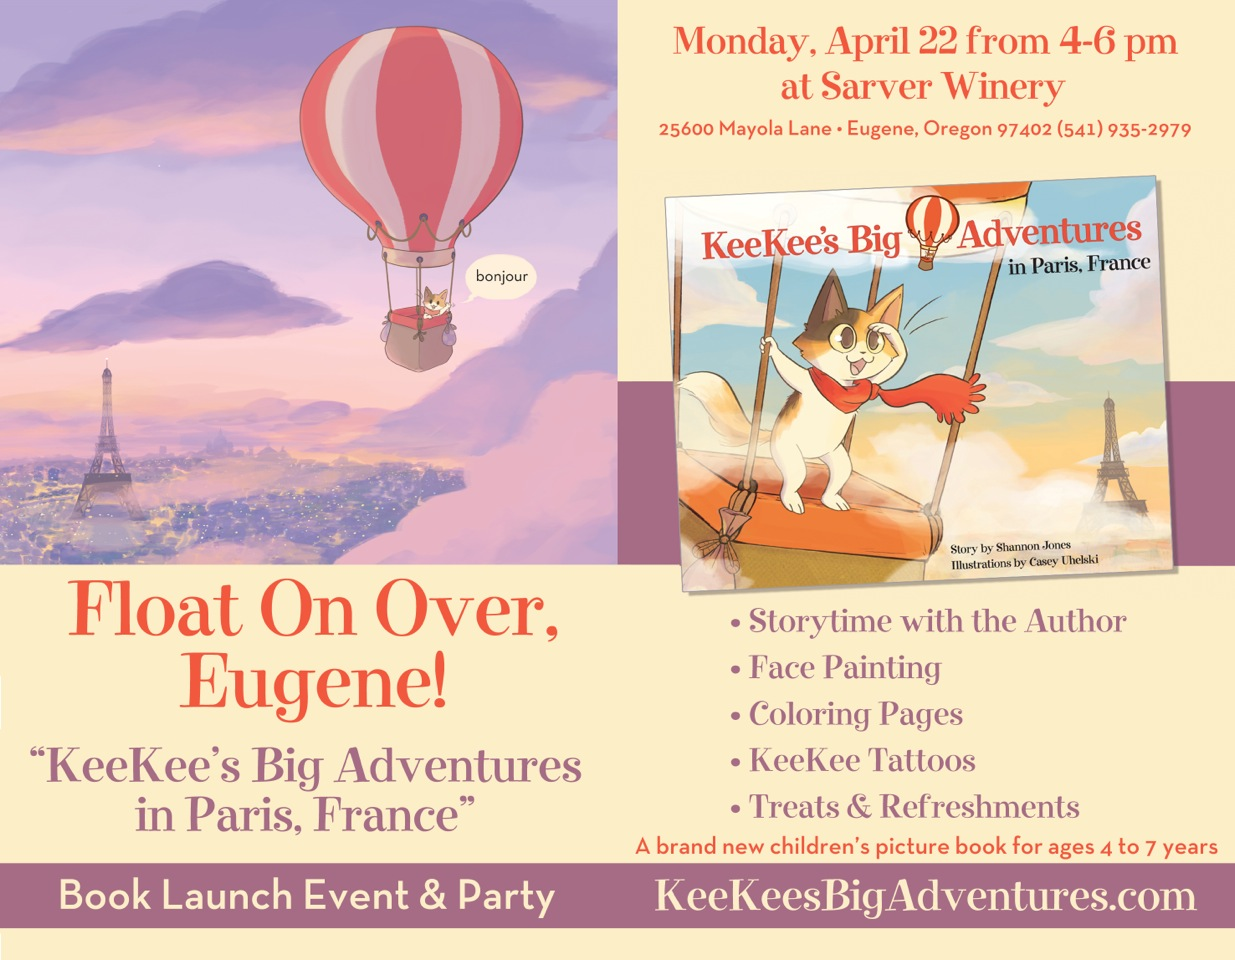 Sarver Winery to Host Children's Book Launch Event & Party: KeeKee's Big Adventures